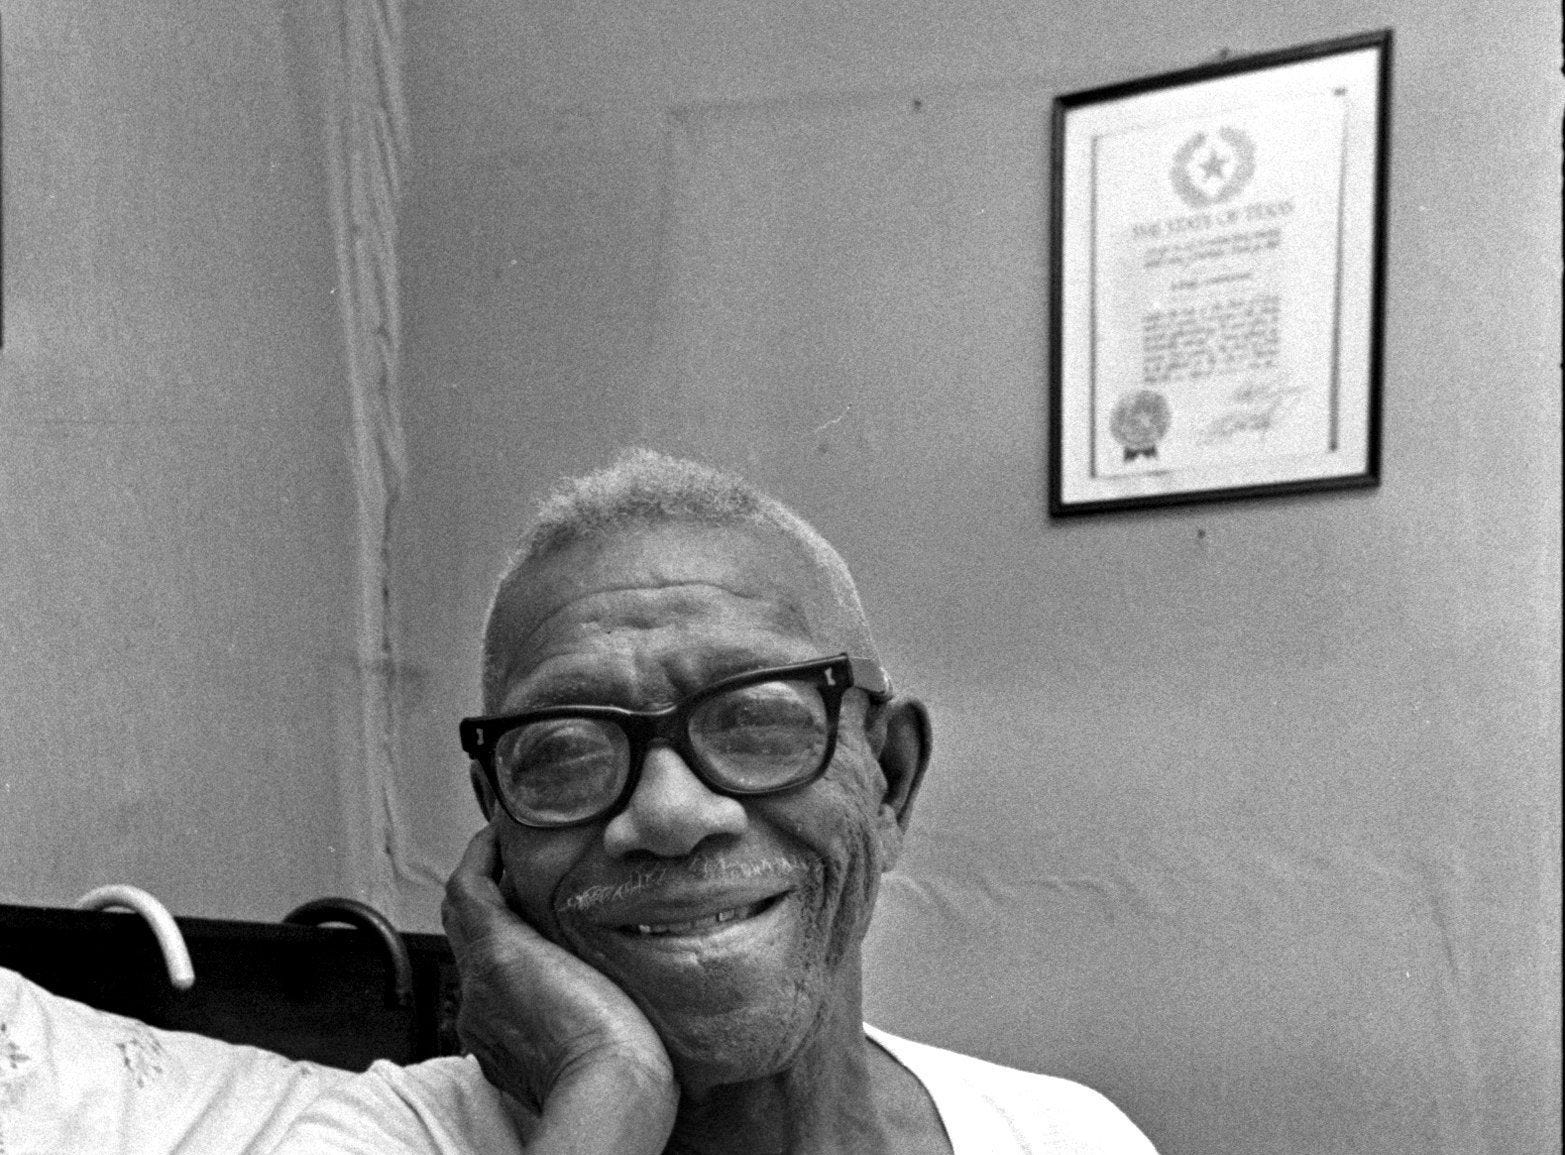 Furry Lewis, legendary Memphis bluesman, in the bedroom of the Memphis duplex at 811 Mosby where he had lived for six years. Age 83 at the time (August 13, 1976), Lewis suffered from cataracts and said he couldn't see anything but shadows.